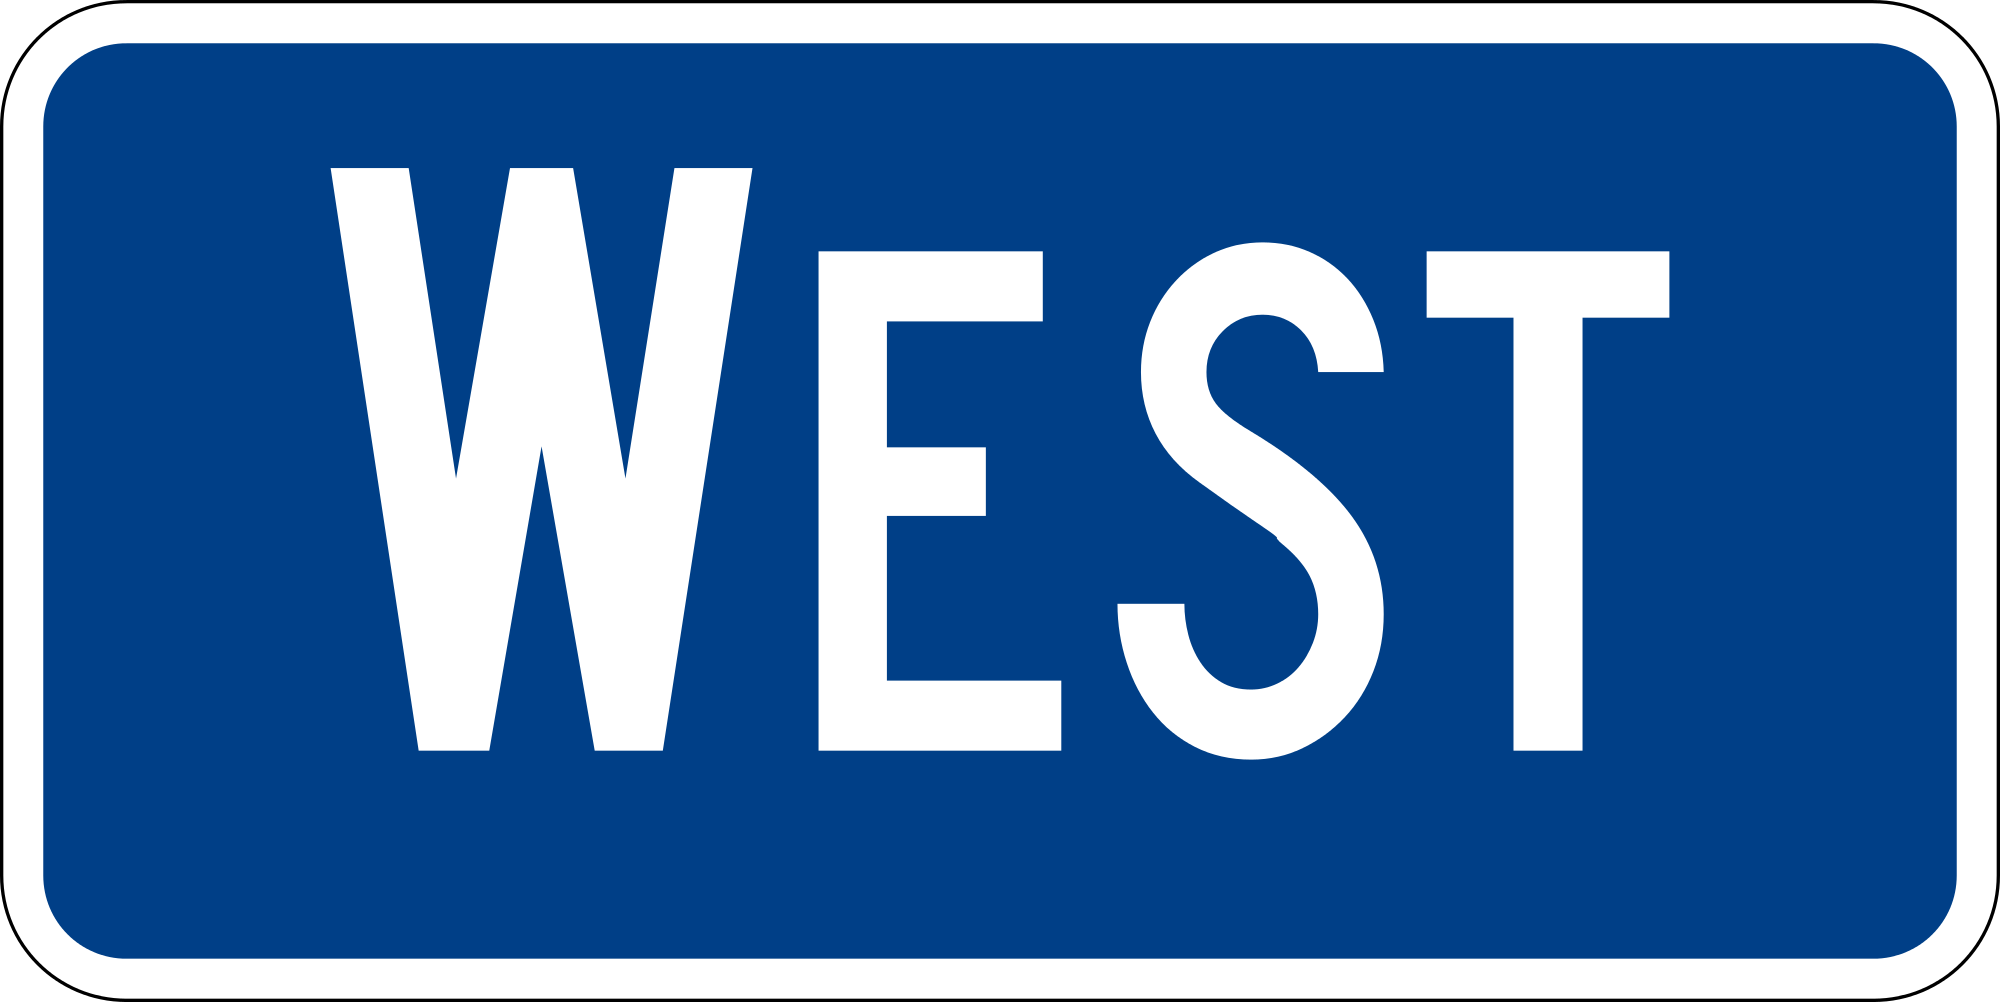 M3-4 Interstate Cardinal Direction Auxiliary Guide Sign